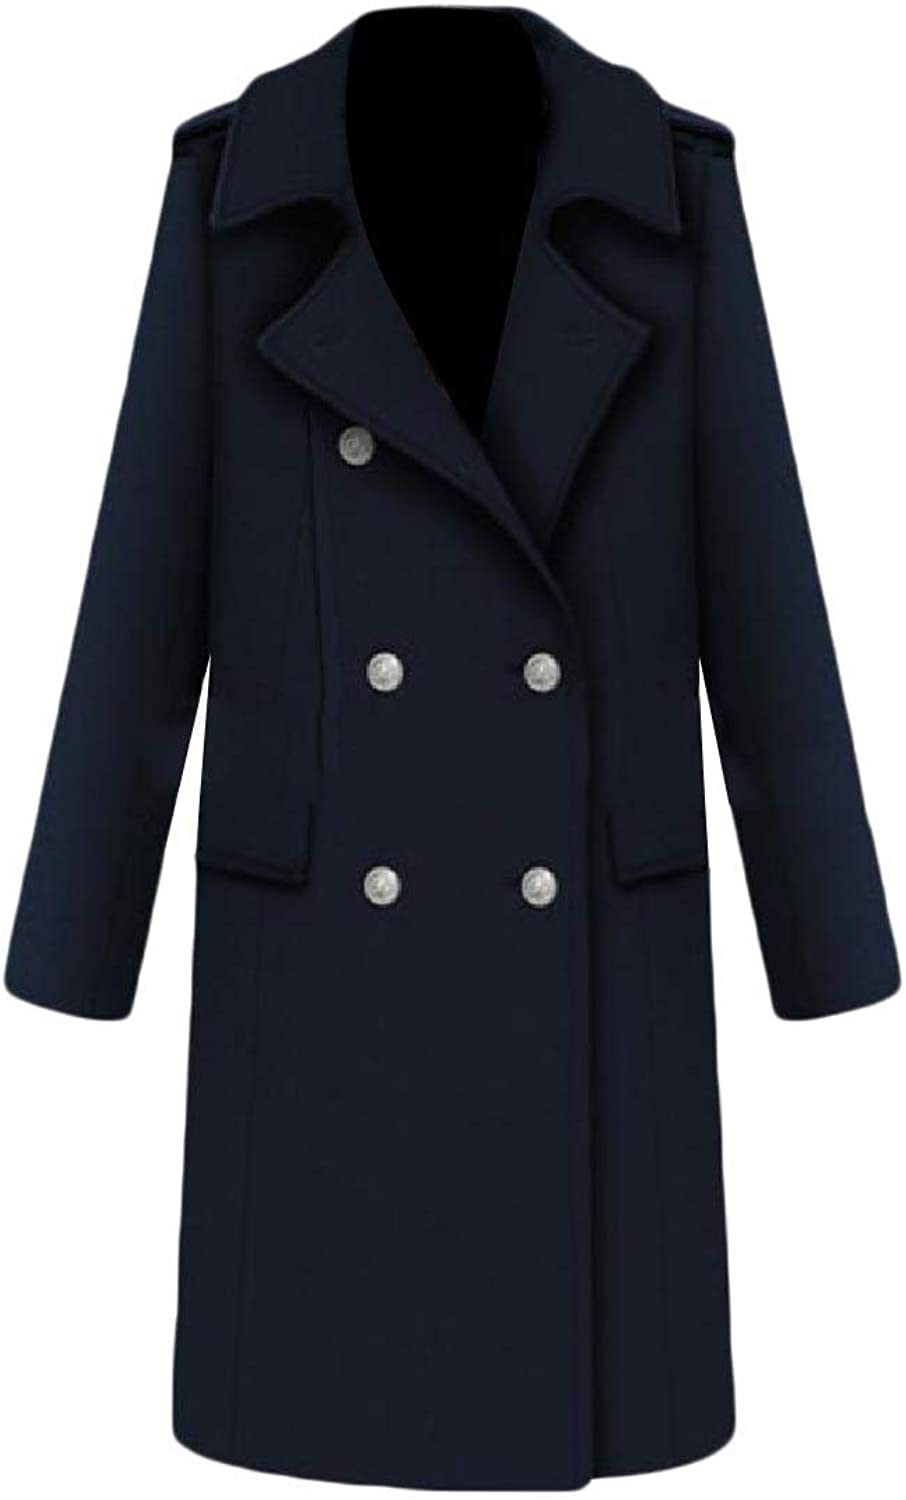 Doanpa Women's Fitted Vintage Wool Blends Cashmere Winter Maxi Pea Coat